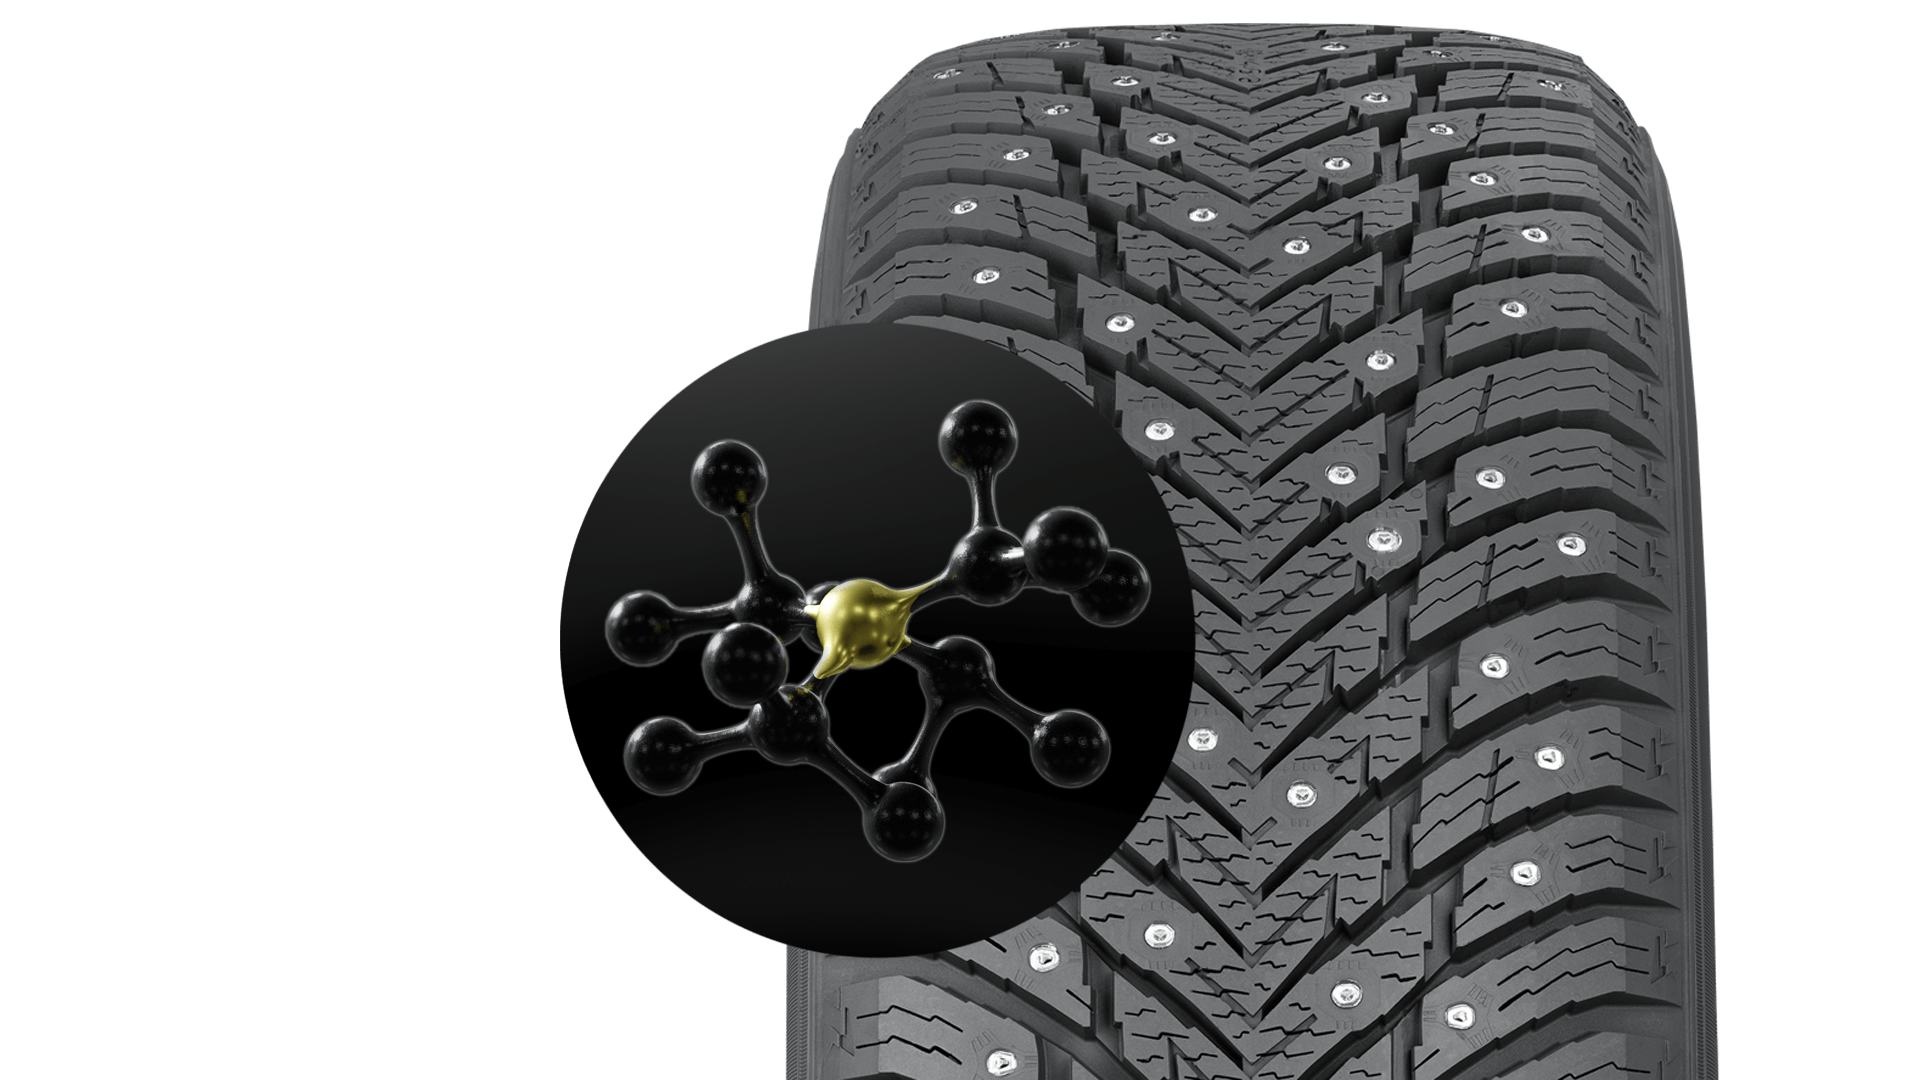 Our special rubber compound makes driving comfortable, even on mild winter days